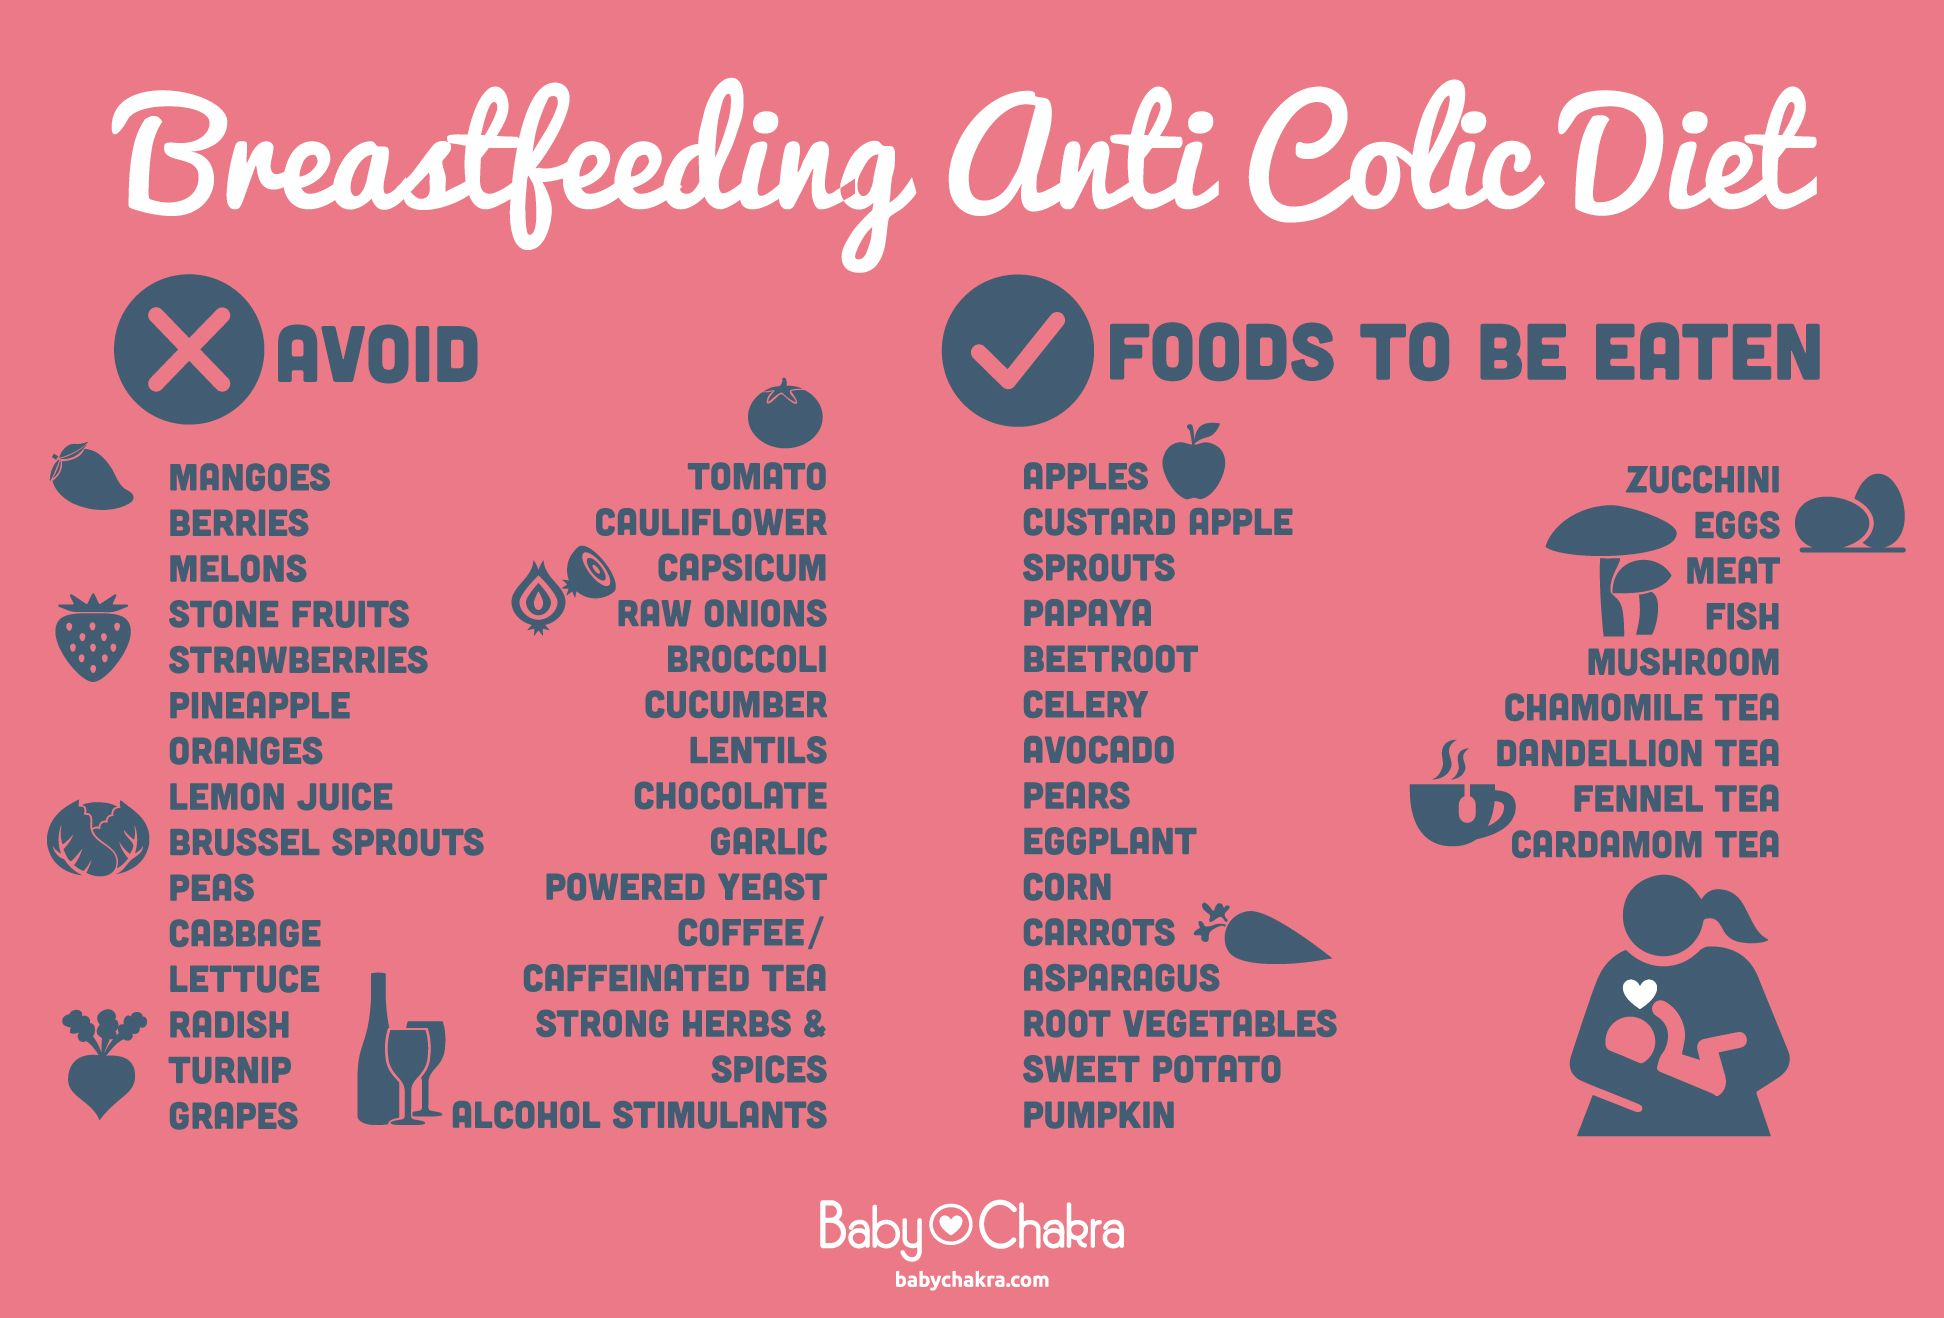 Breastfeeding Anti-Colic diet #breastfeeding_diet_pineapple